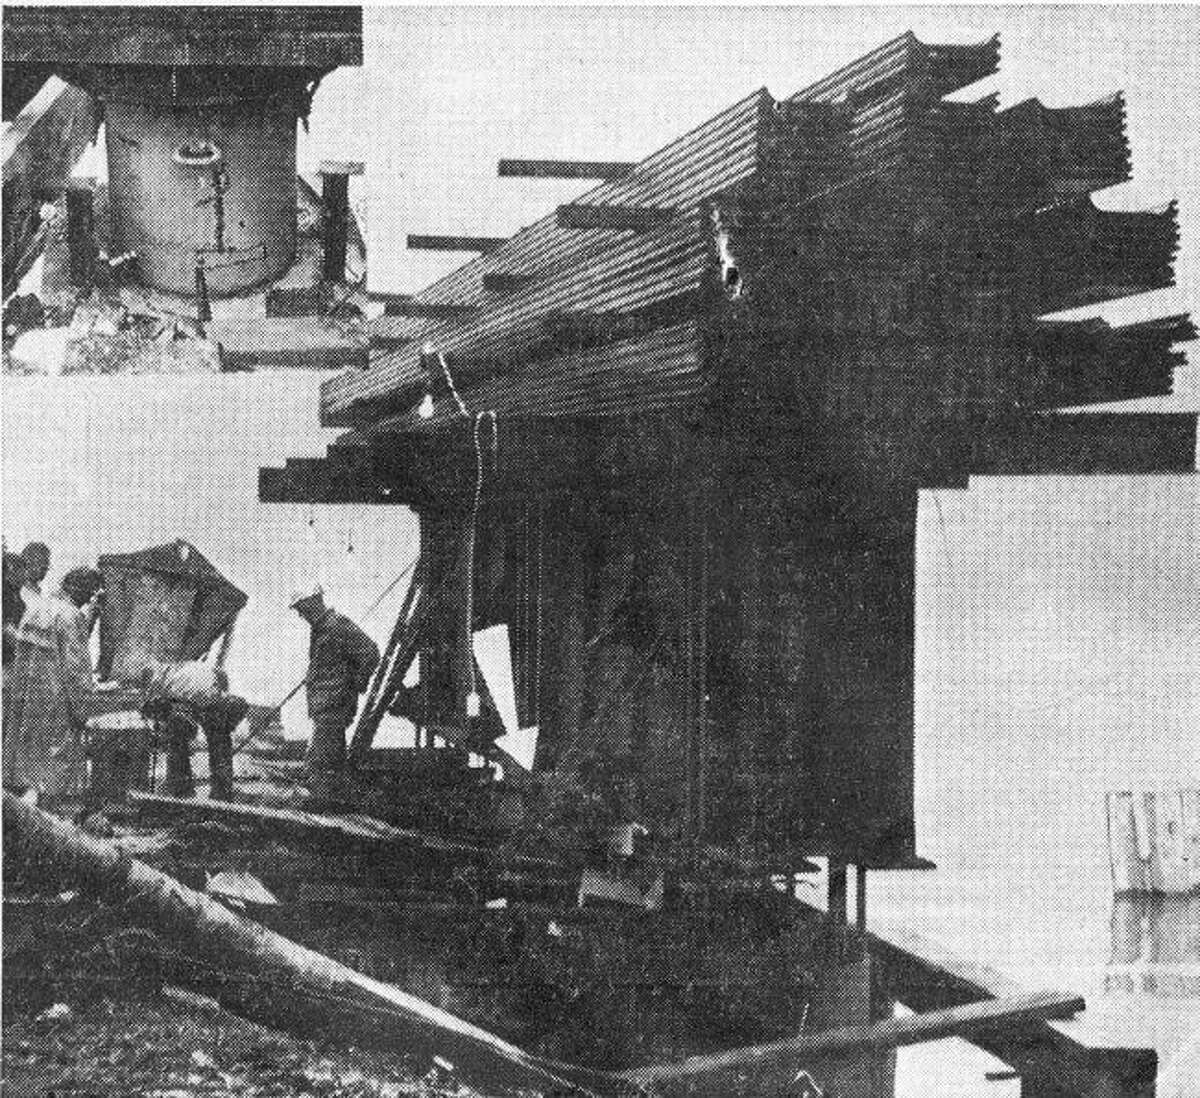 The Maple Street Bridge that was constructed in the mid 1960s is shown as it was being being built.